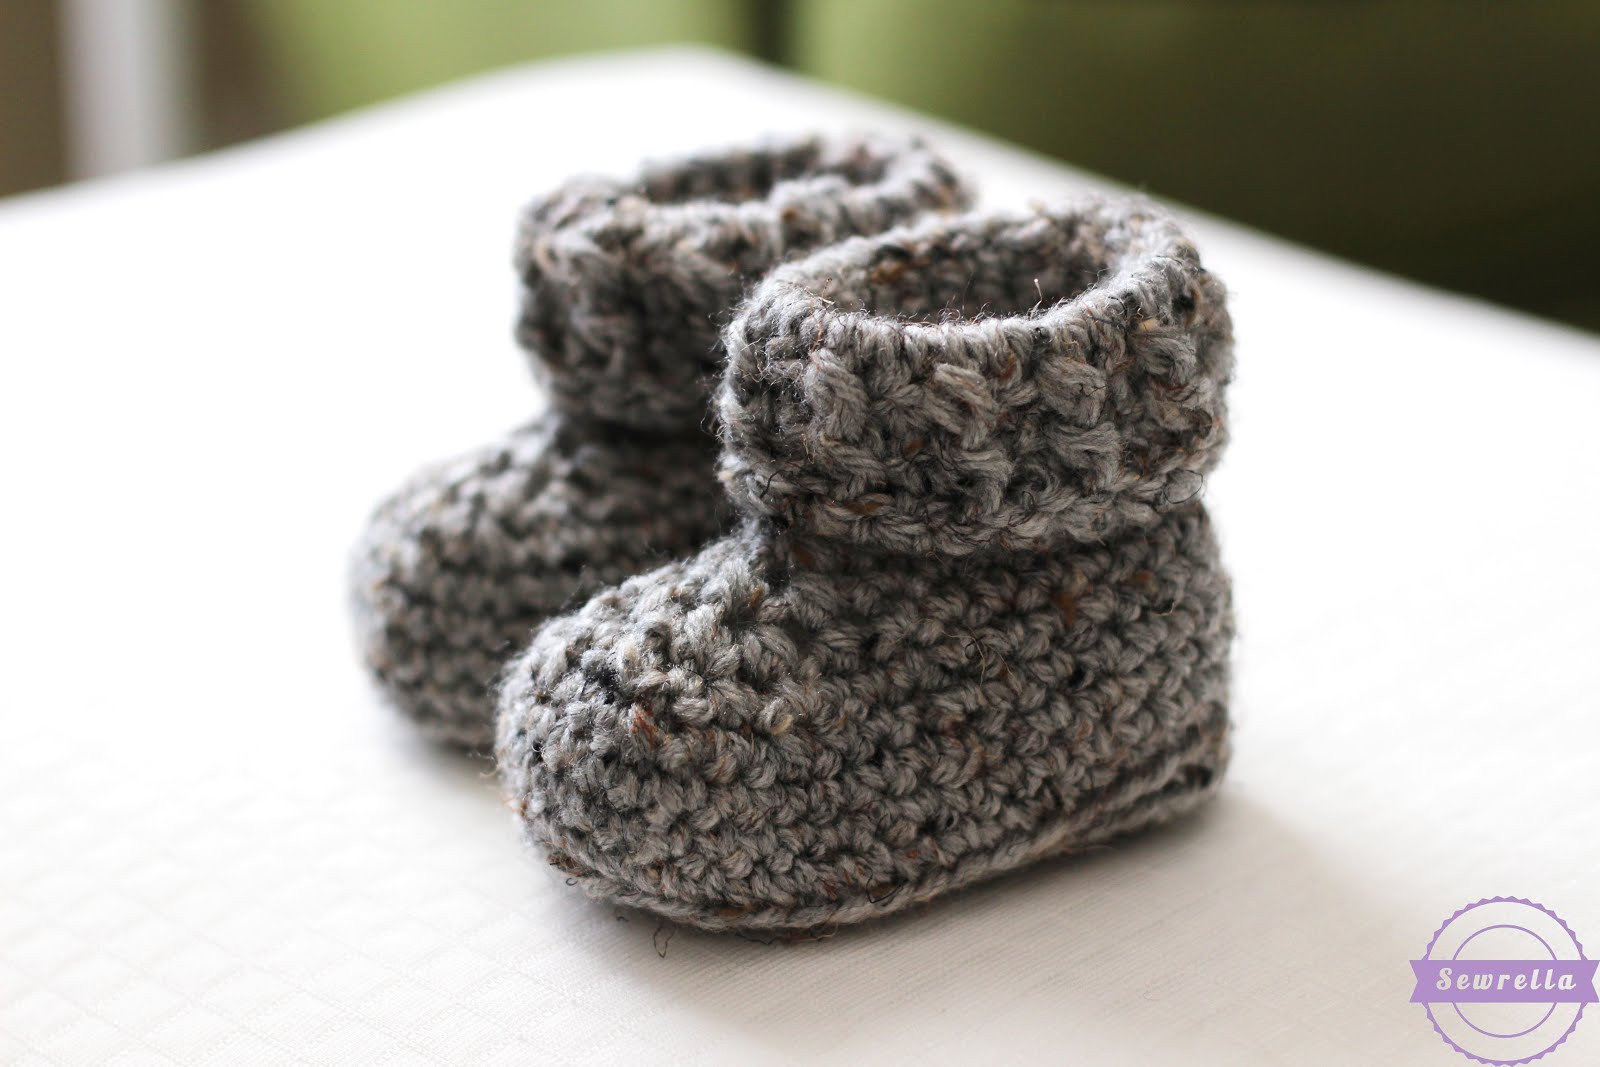 Crochet Baby Booties Beautiful the Parker Crochet Baby Booties Sewrella Of Crochet Baby Booties Fresh Crochet Baby Mary Jane Booties Free Patterns